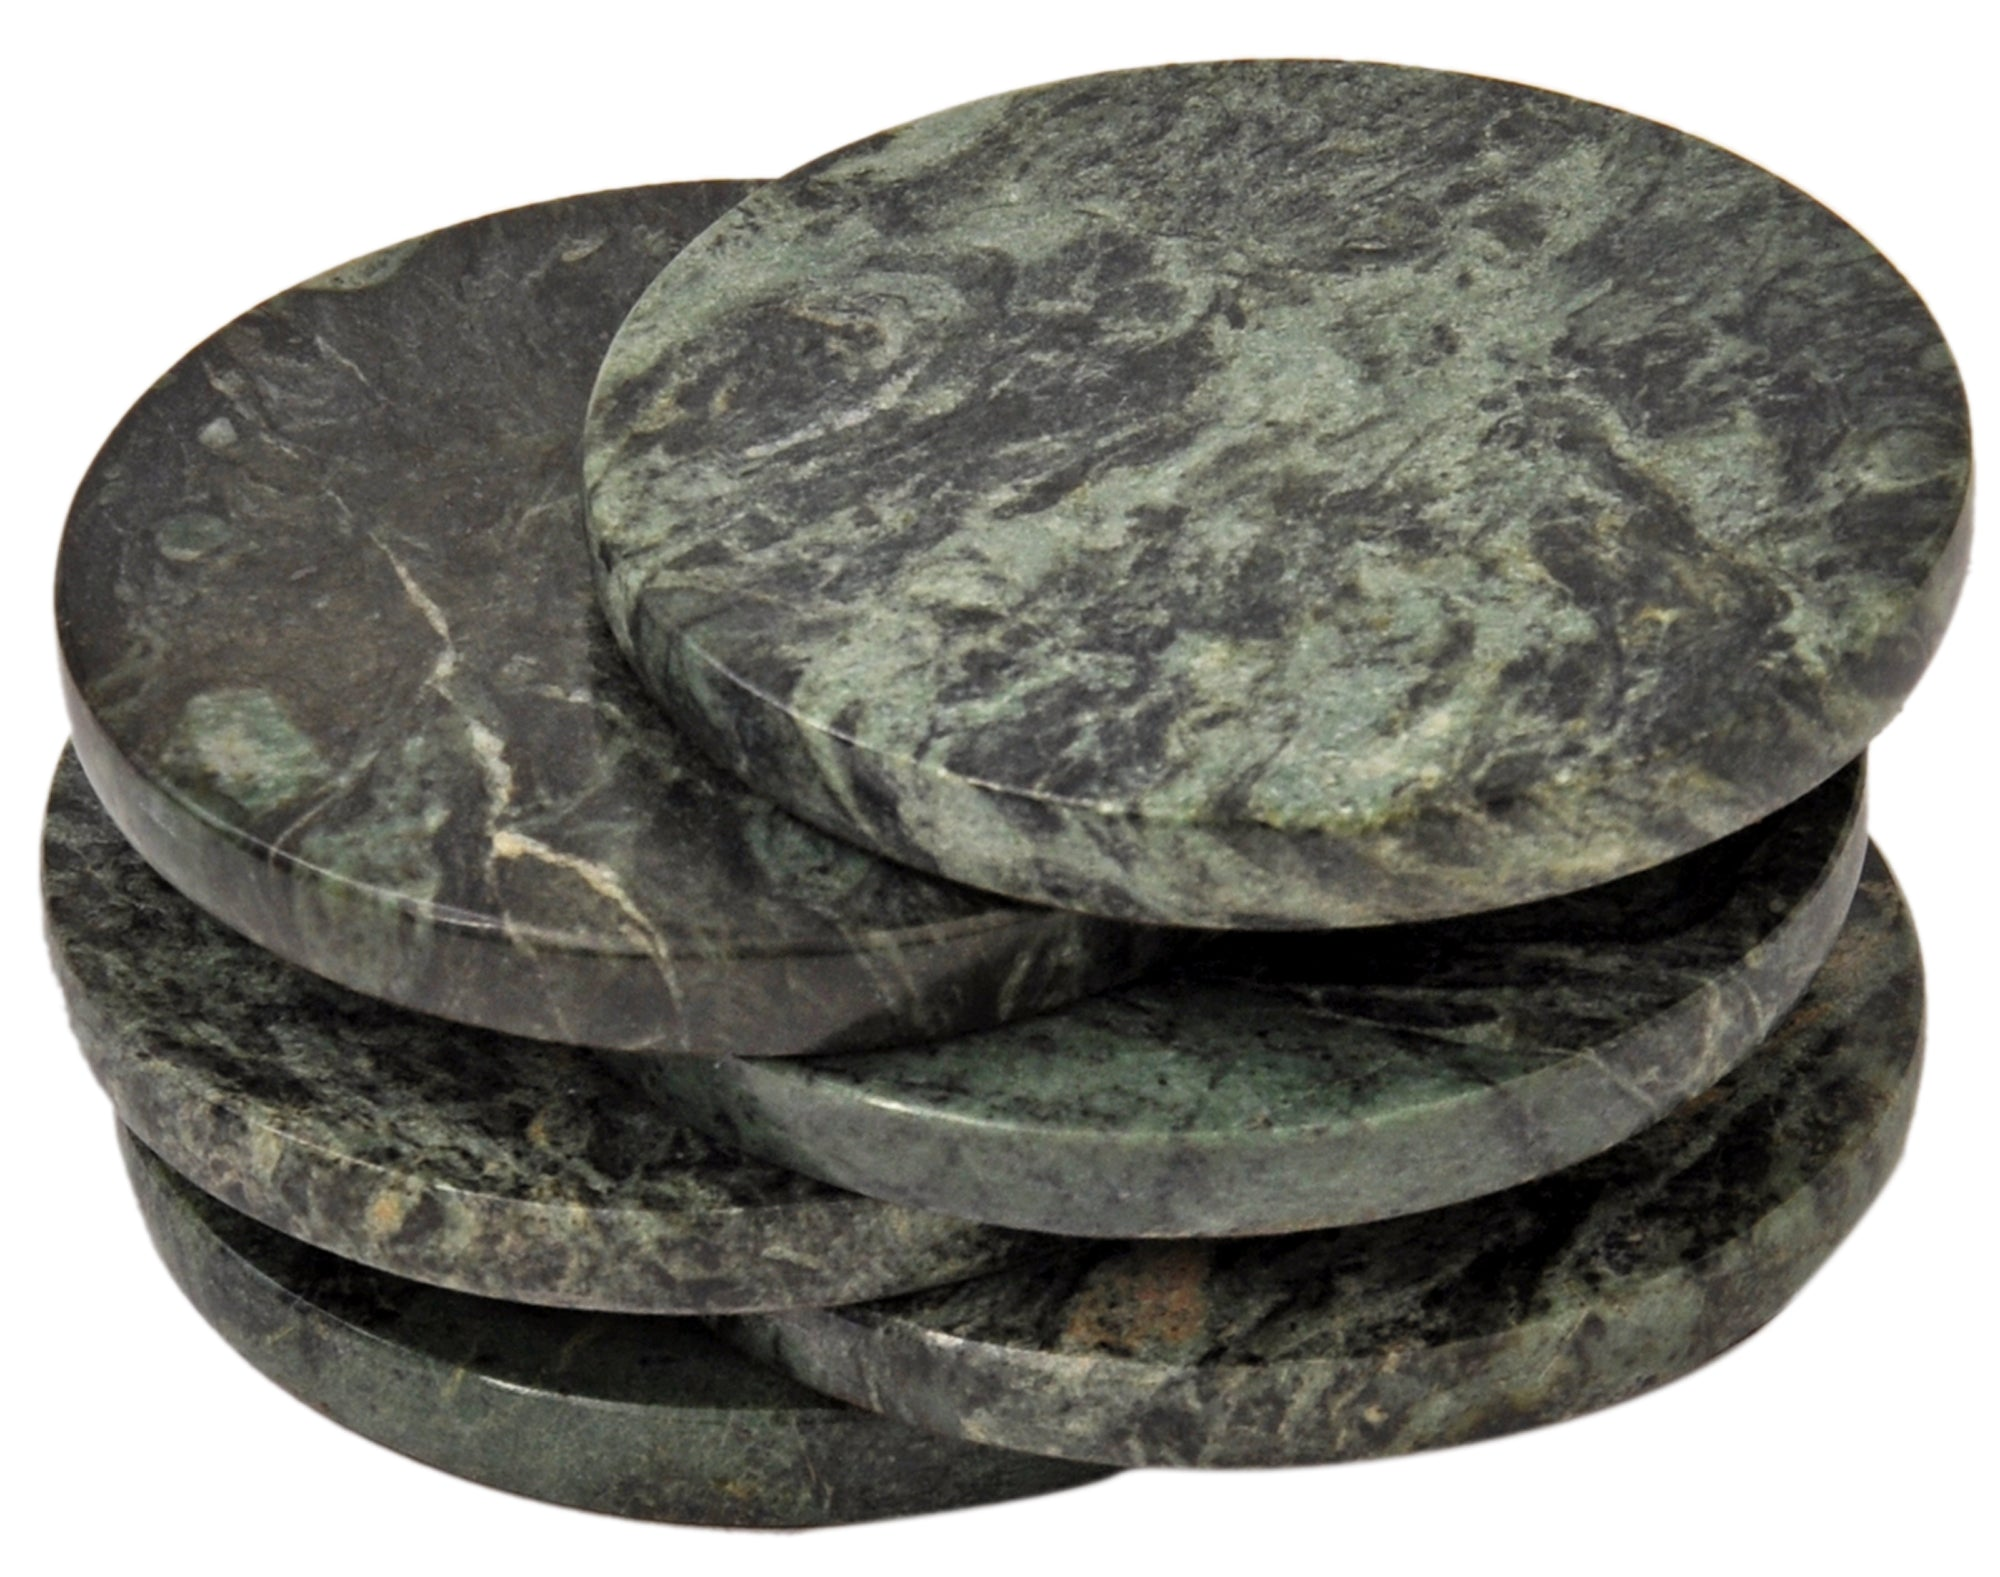 Set of 6 - Green Marble Stone Coasters  – Polished Coasters  – 3.5 Inches ( 9 cm) in Diameter  – Protection from Drink Rings -CraftsOfEgypt